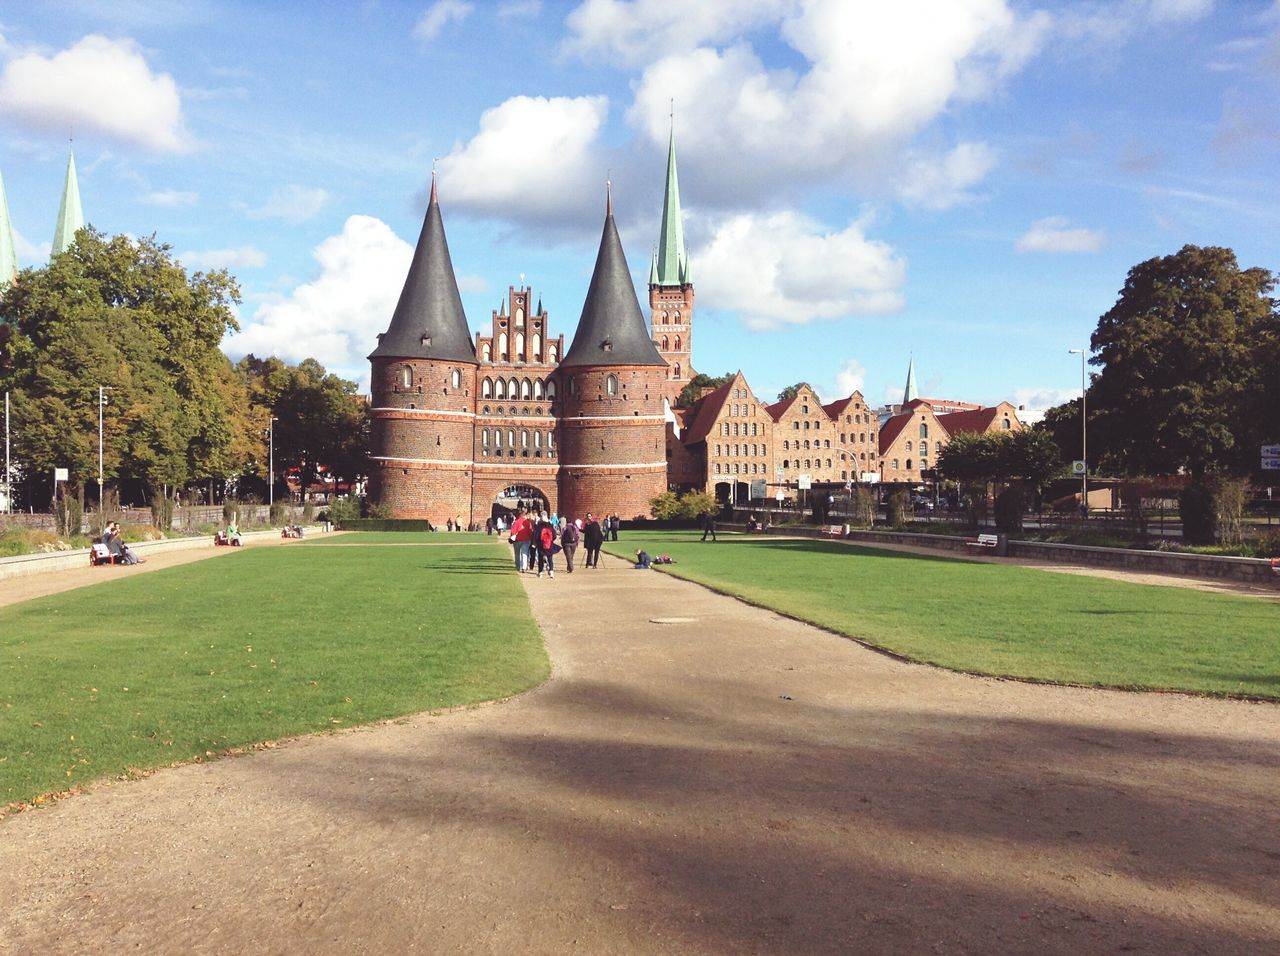 The Holstentor Lübeck From A Distance. · Lübeck Germany Schleswig-Holstein Hansestadt Lübeck Hl Landmarks Monuments Sightseeing Architecture Travel Destinations Travel Tourism Outdoors Beautiful Day Like A Postcard